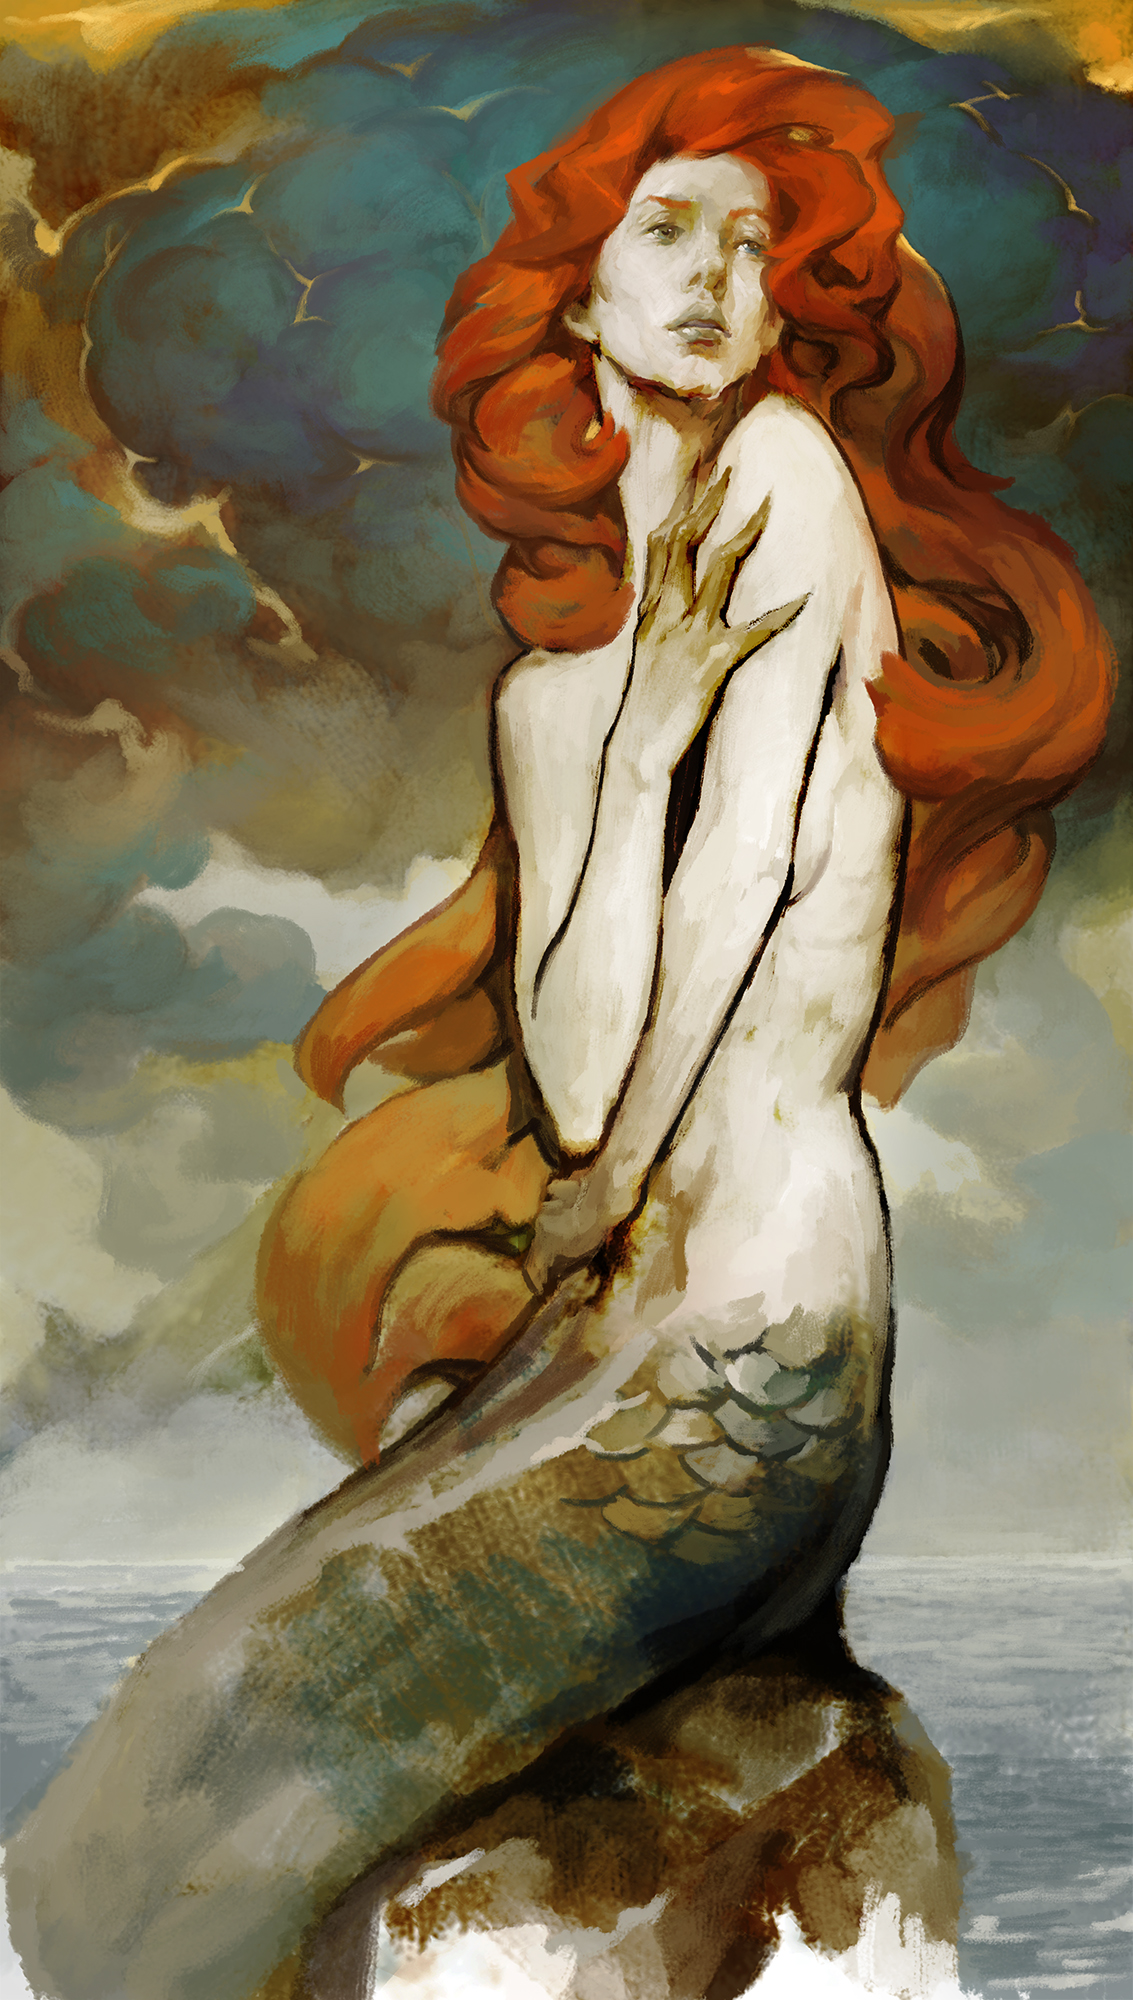 Mermaid by hoooook